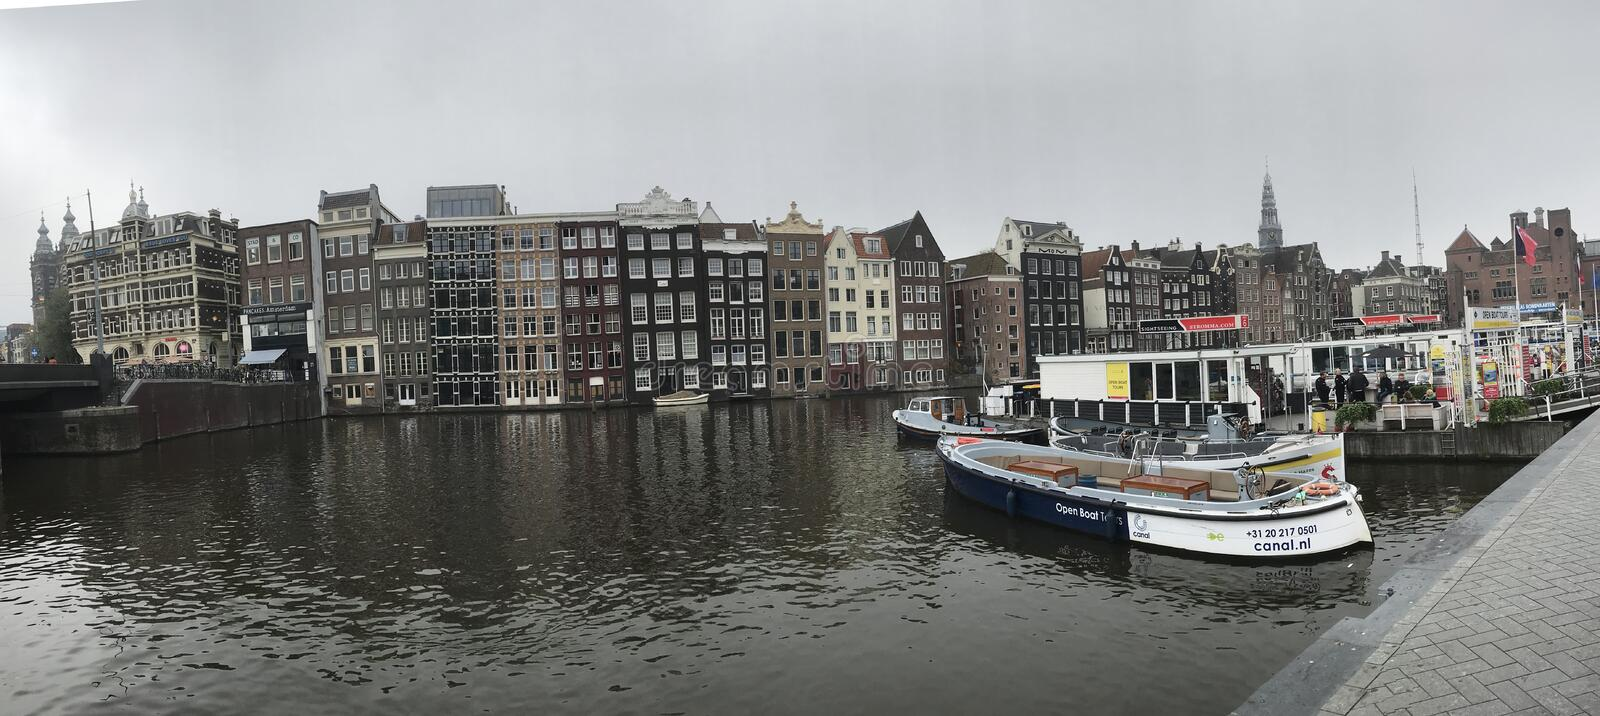 Canal Water Way in Amsterdam, Holland royalty free stock photos